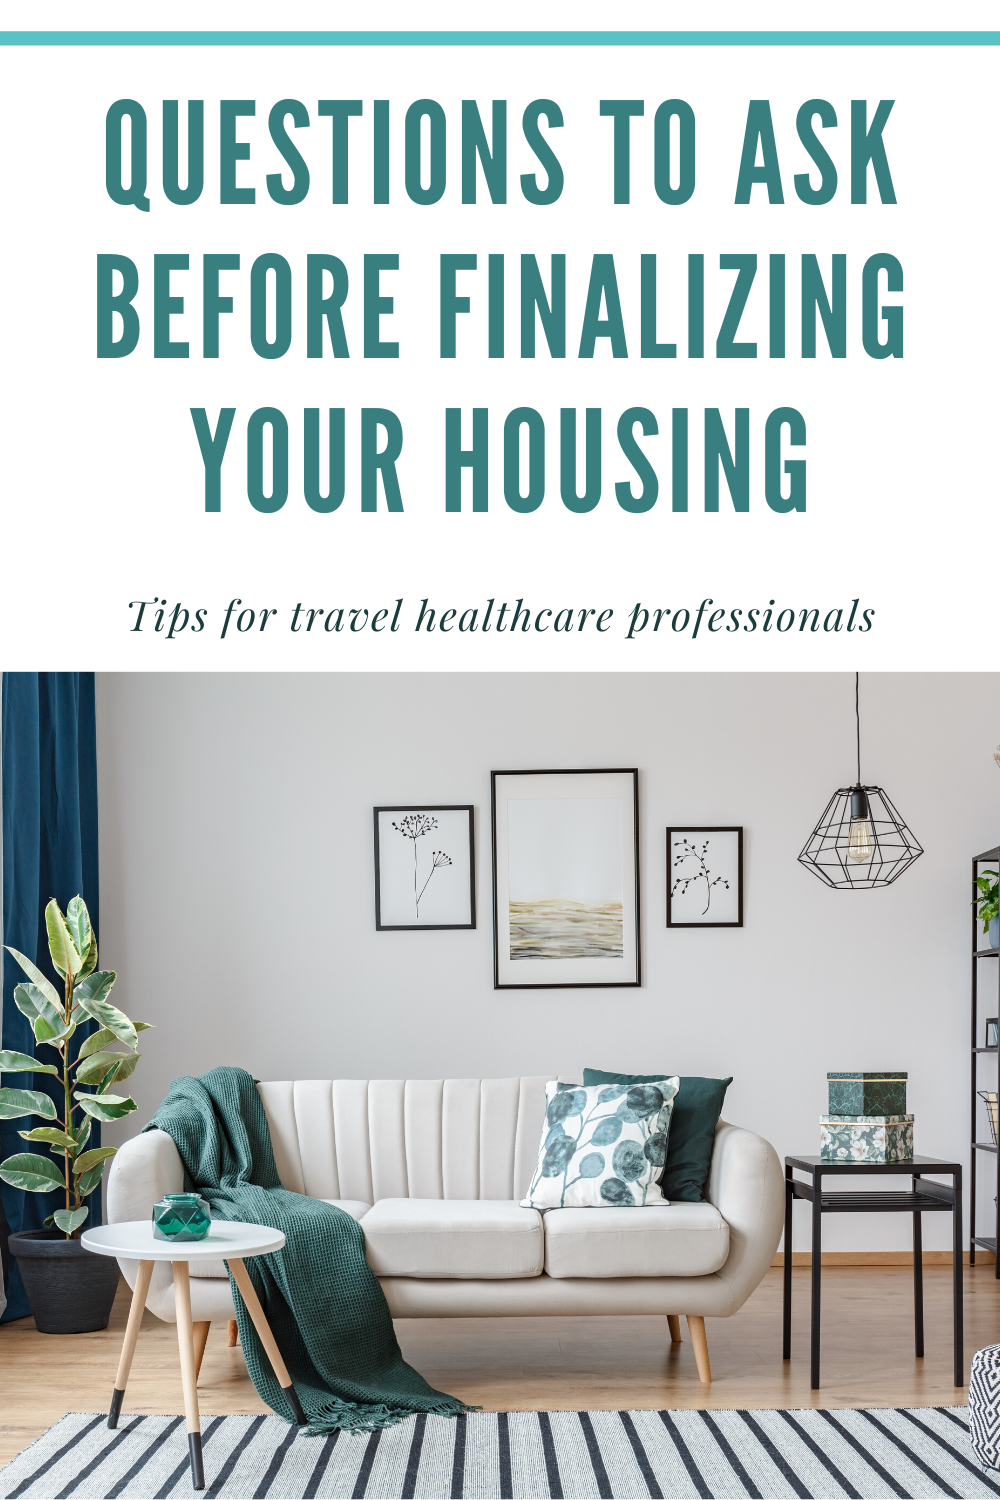 Ask These Questions Before Finalizing Your Housing Cariant Health Partners In 2020 Rental Apartments Apartment Decor Apartment